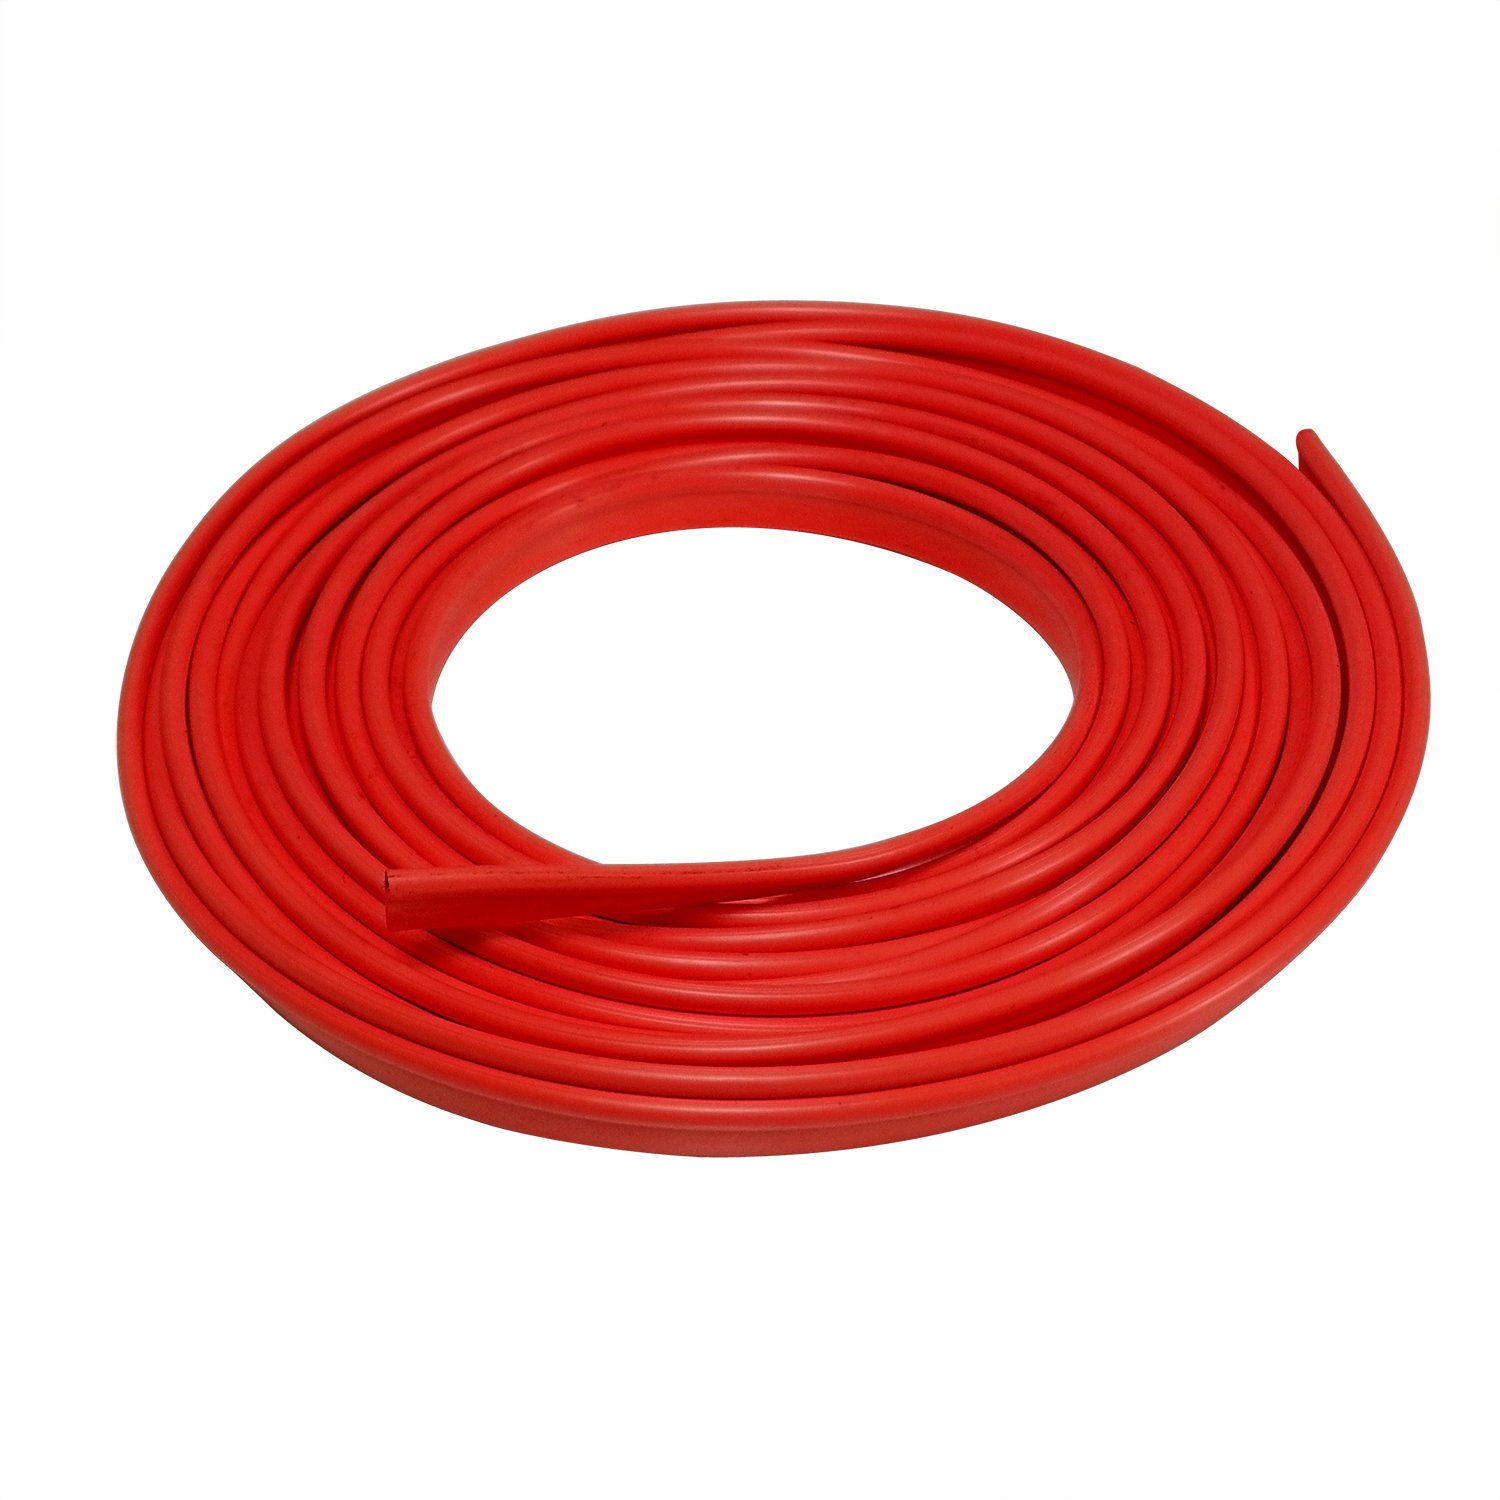 EJ's SUPER CAR Car Interior Moulding Trim, 16FT(5M) Color Film Car Interior Exterior Decoration Moulding Trim Rubber Seal Protector Fit for Most Car(Red)